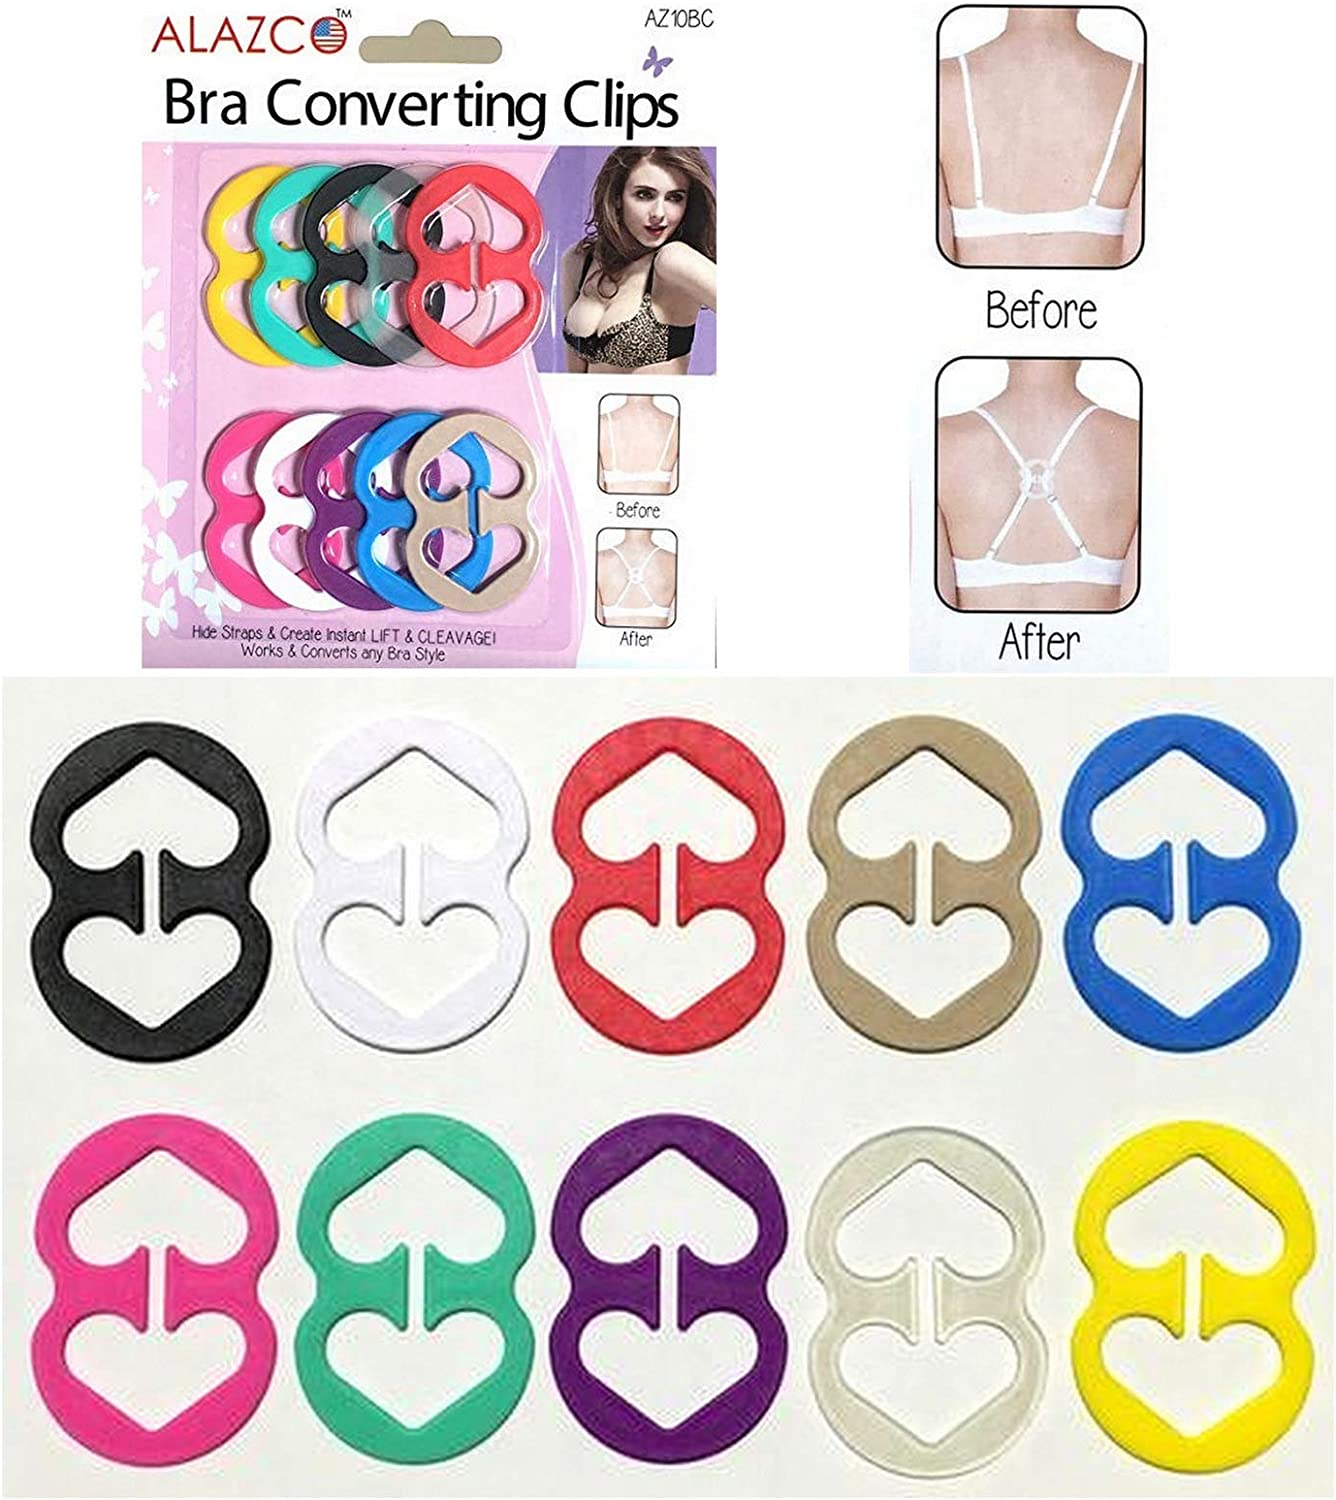 3 Pack - Assorted, White Bra Strap Clips Conceal Straps Cleavage Control